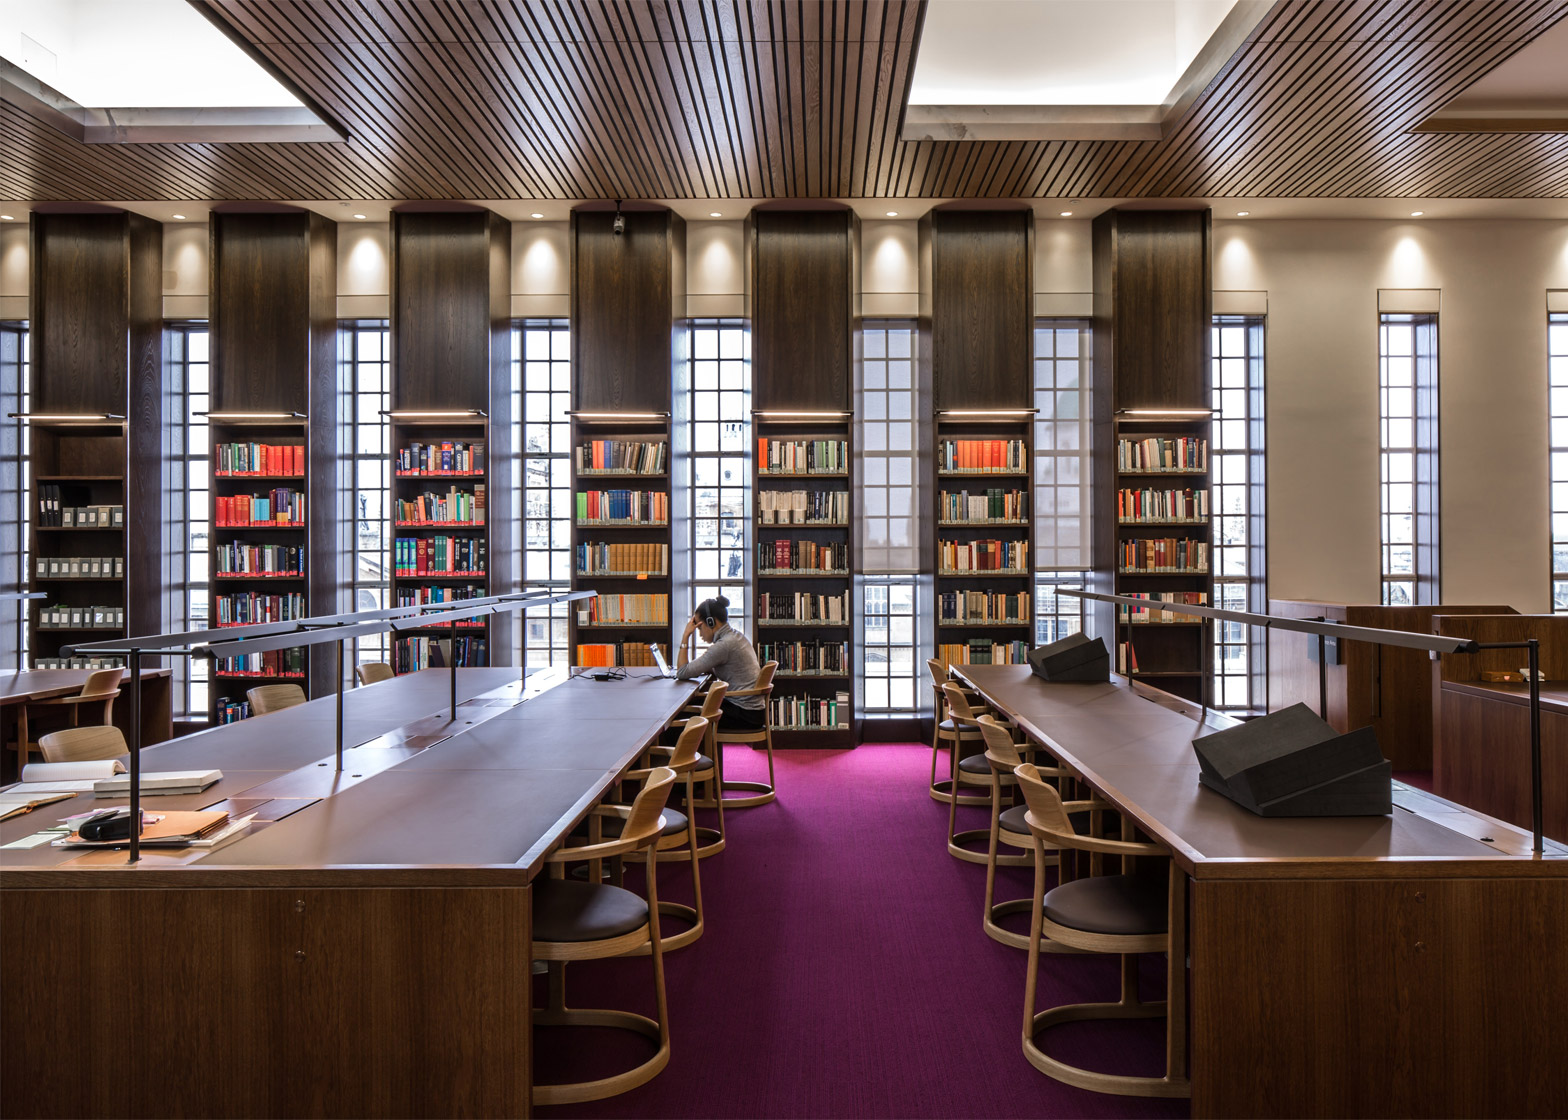 Weston Library, University of Oxford by WilkinsonEyre. Photograph by Will Pryce